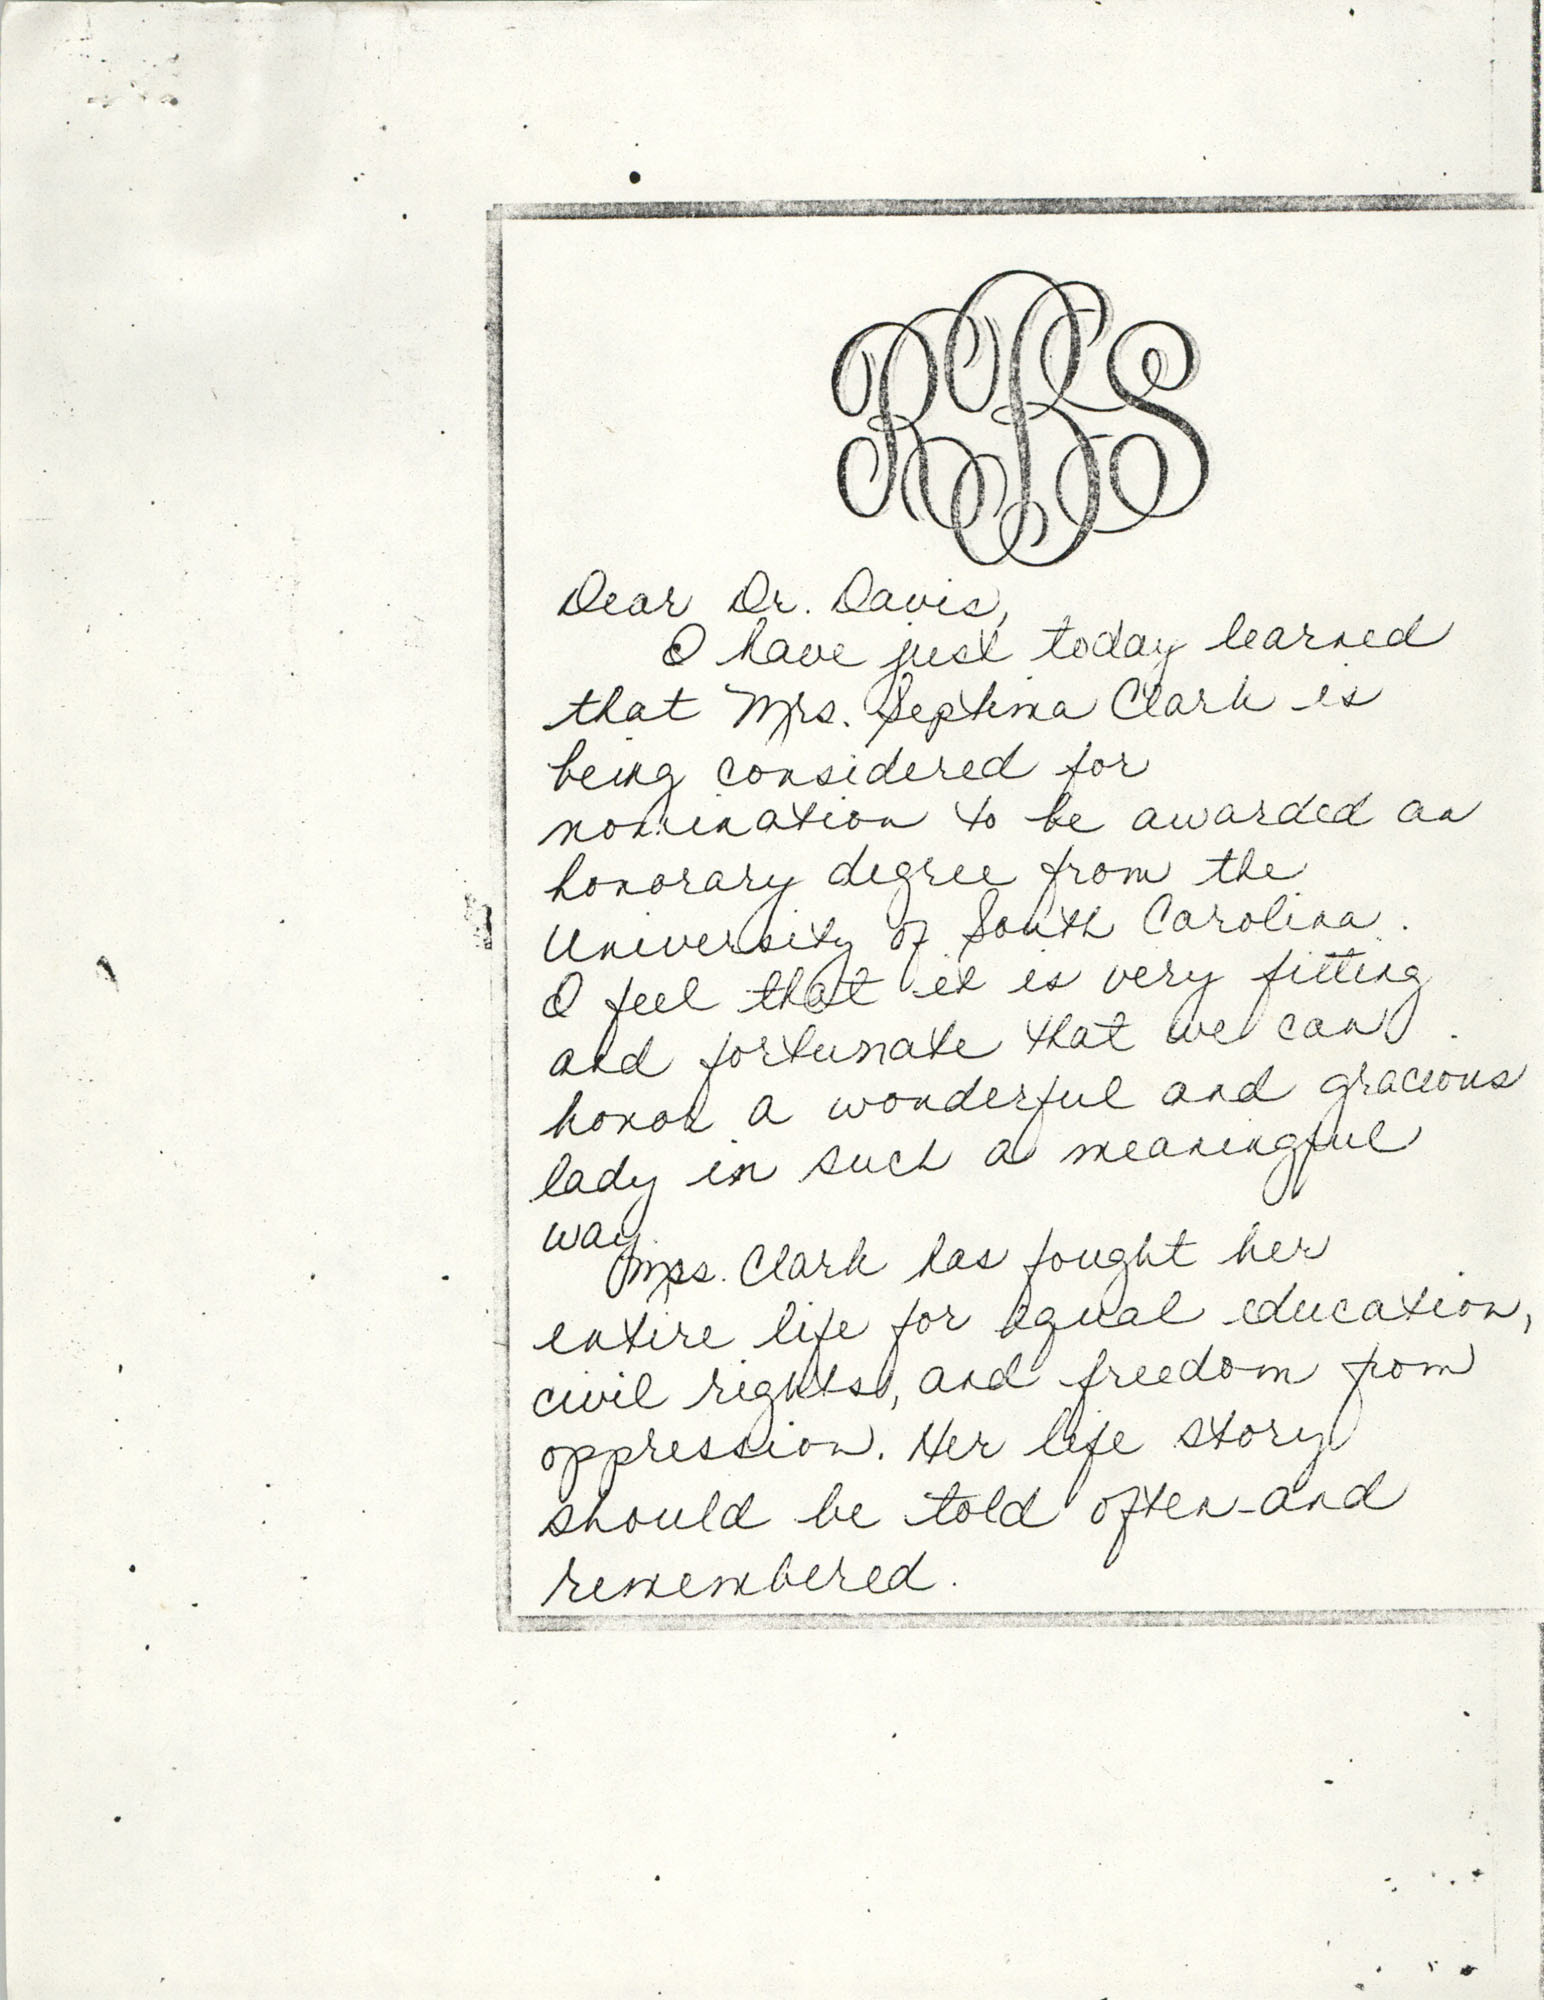 Letter from Robin S. Bluestein to Keith E. Davis, November 8, 1976